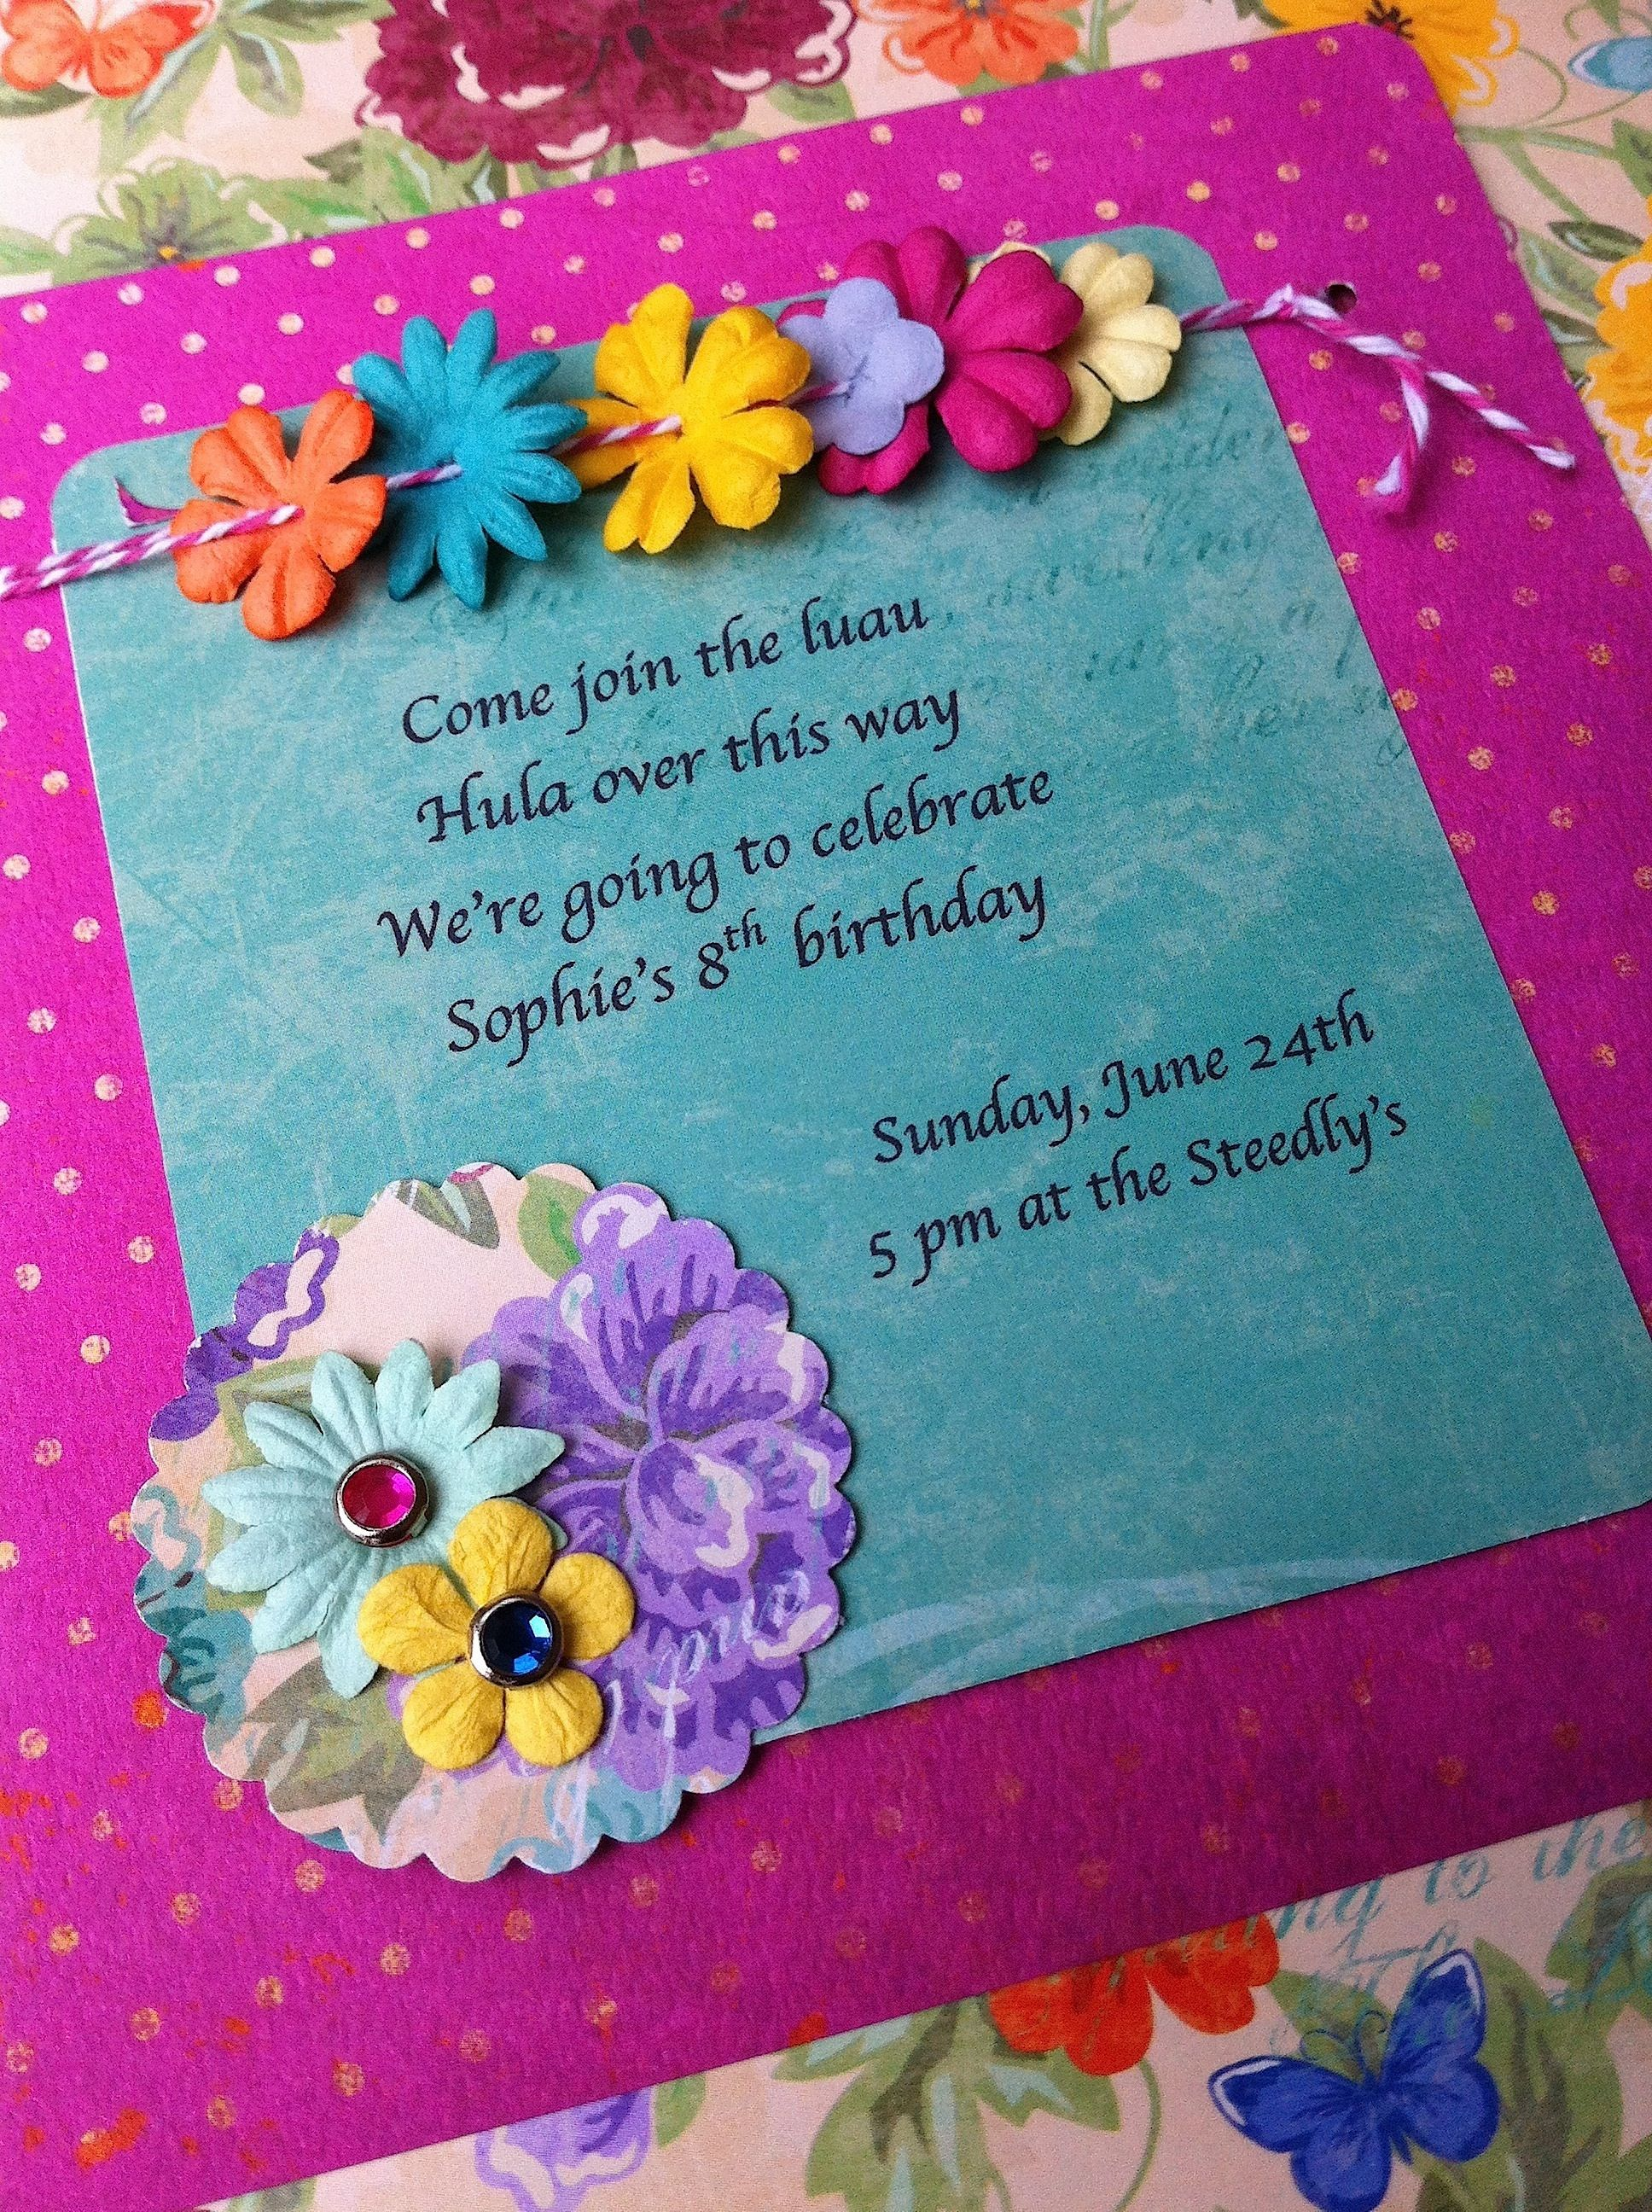 Luau invite scrapbook flowers and bakers twine paper crafts luau invite scrapbook flowers and bakers twine stopboris Gallery